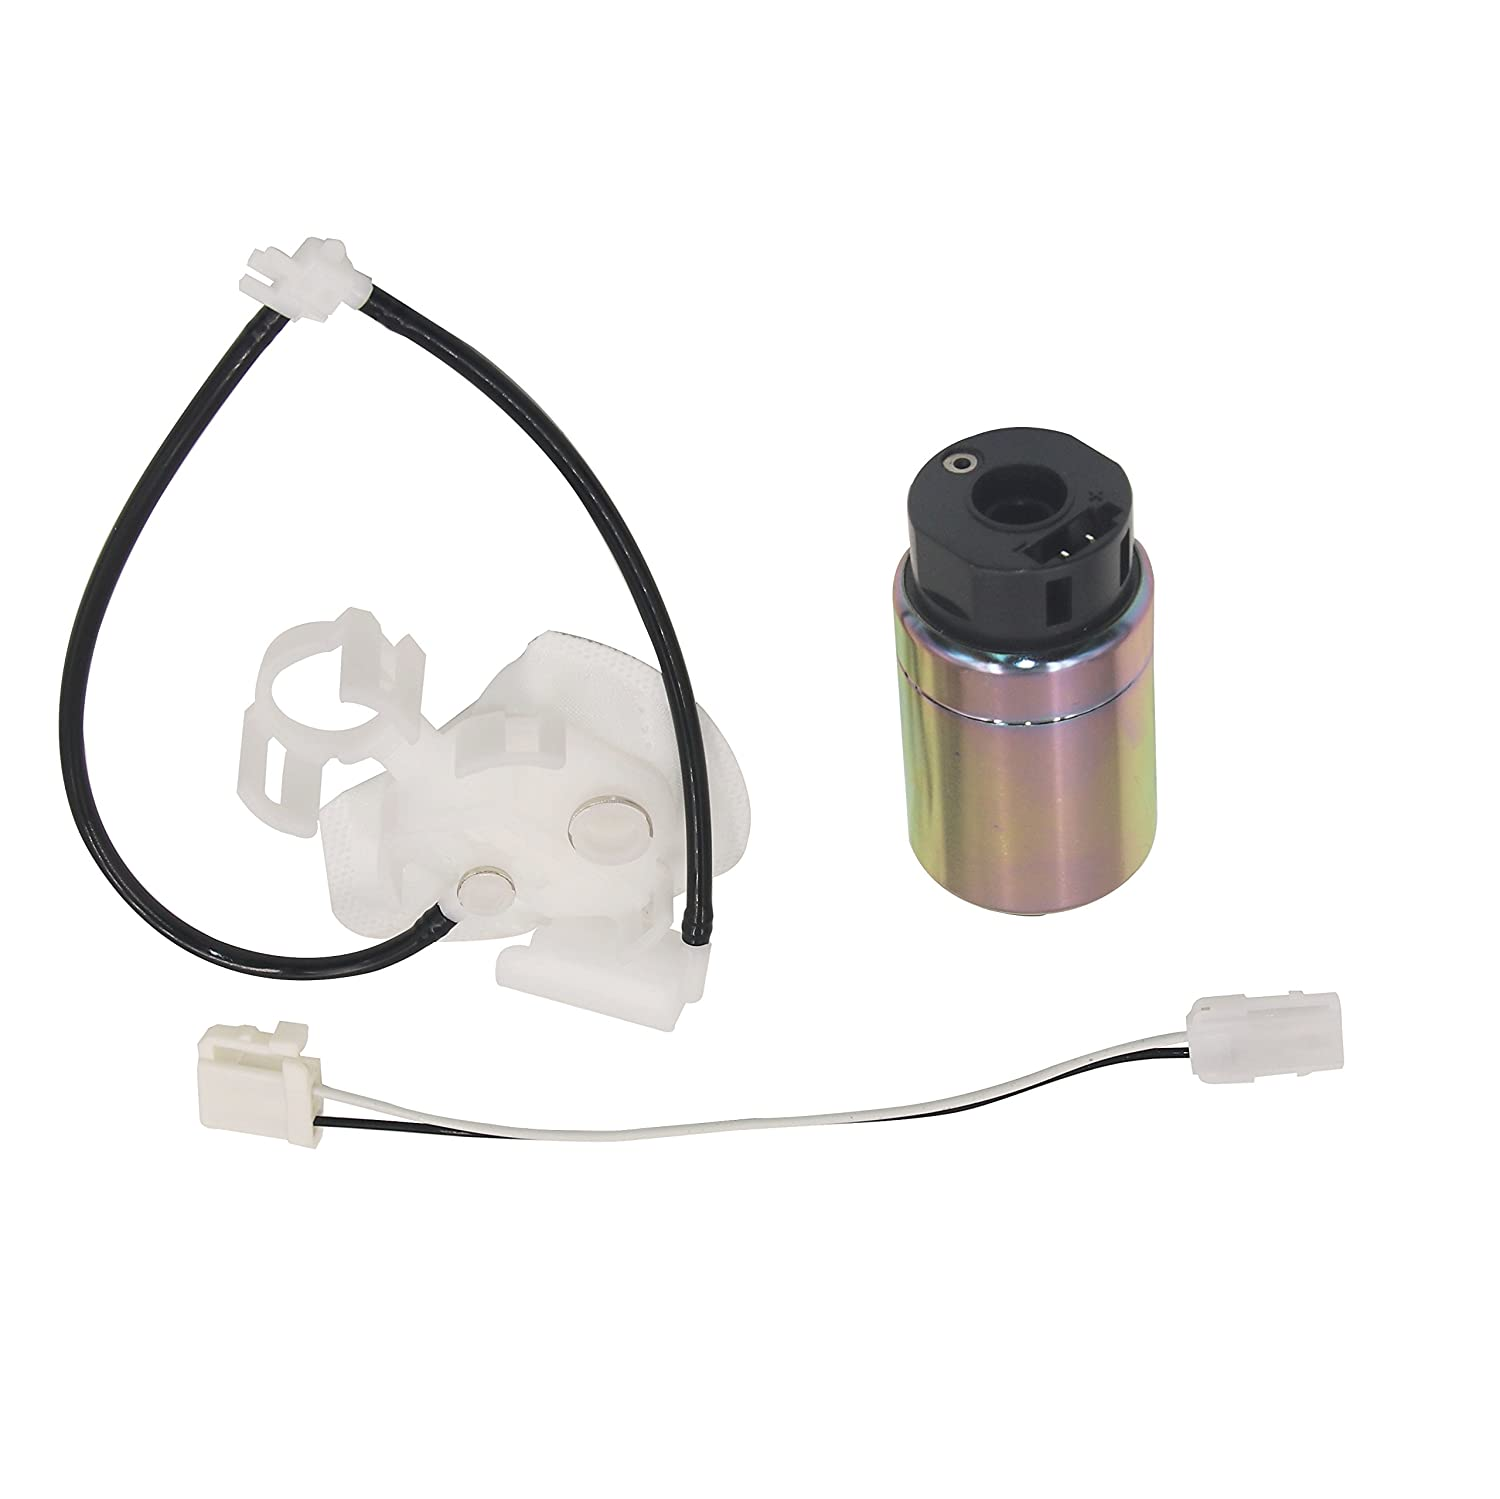 Custoneparts 9500202 New Electric Intank Fuel Pump 2008 Scion Xd Filter Replacement Fit Toyota Camry Corolla Matrix Hilux Yaris Lexus Ct200h Automotive